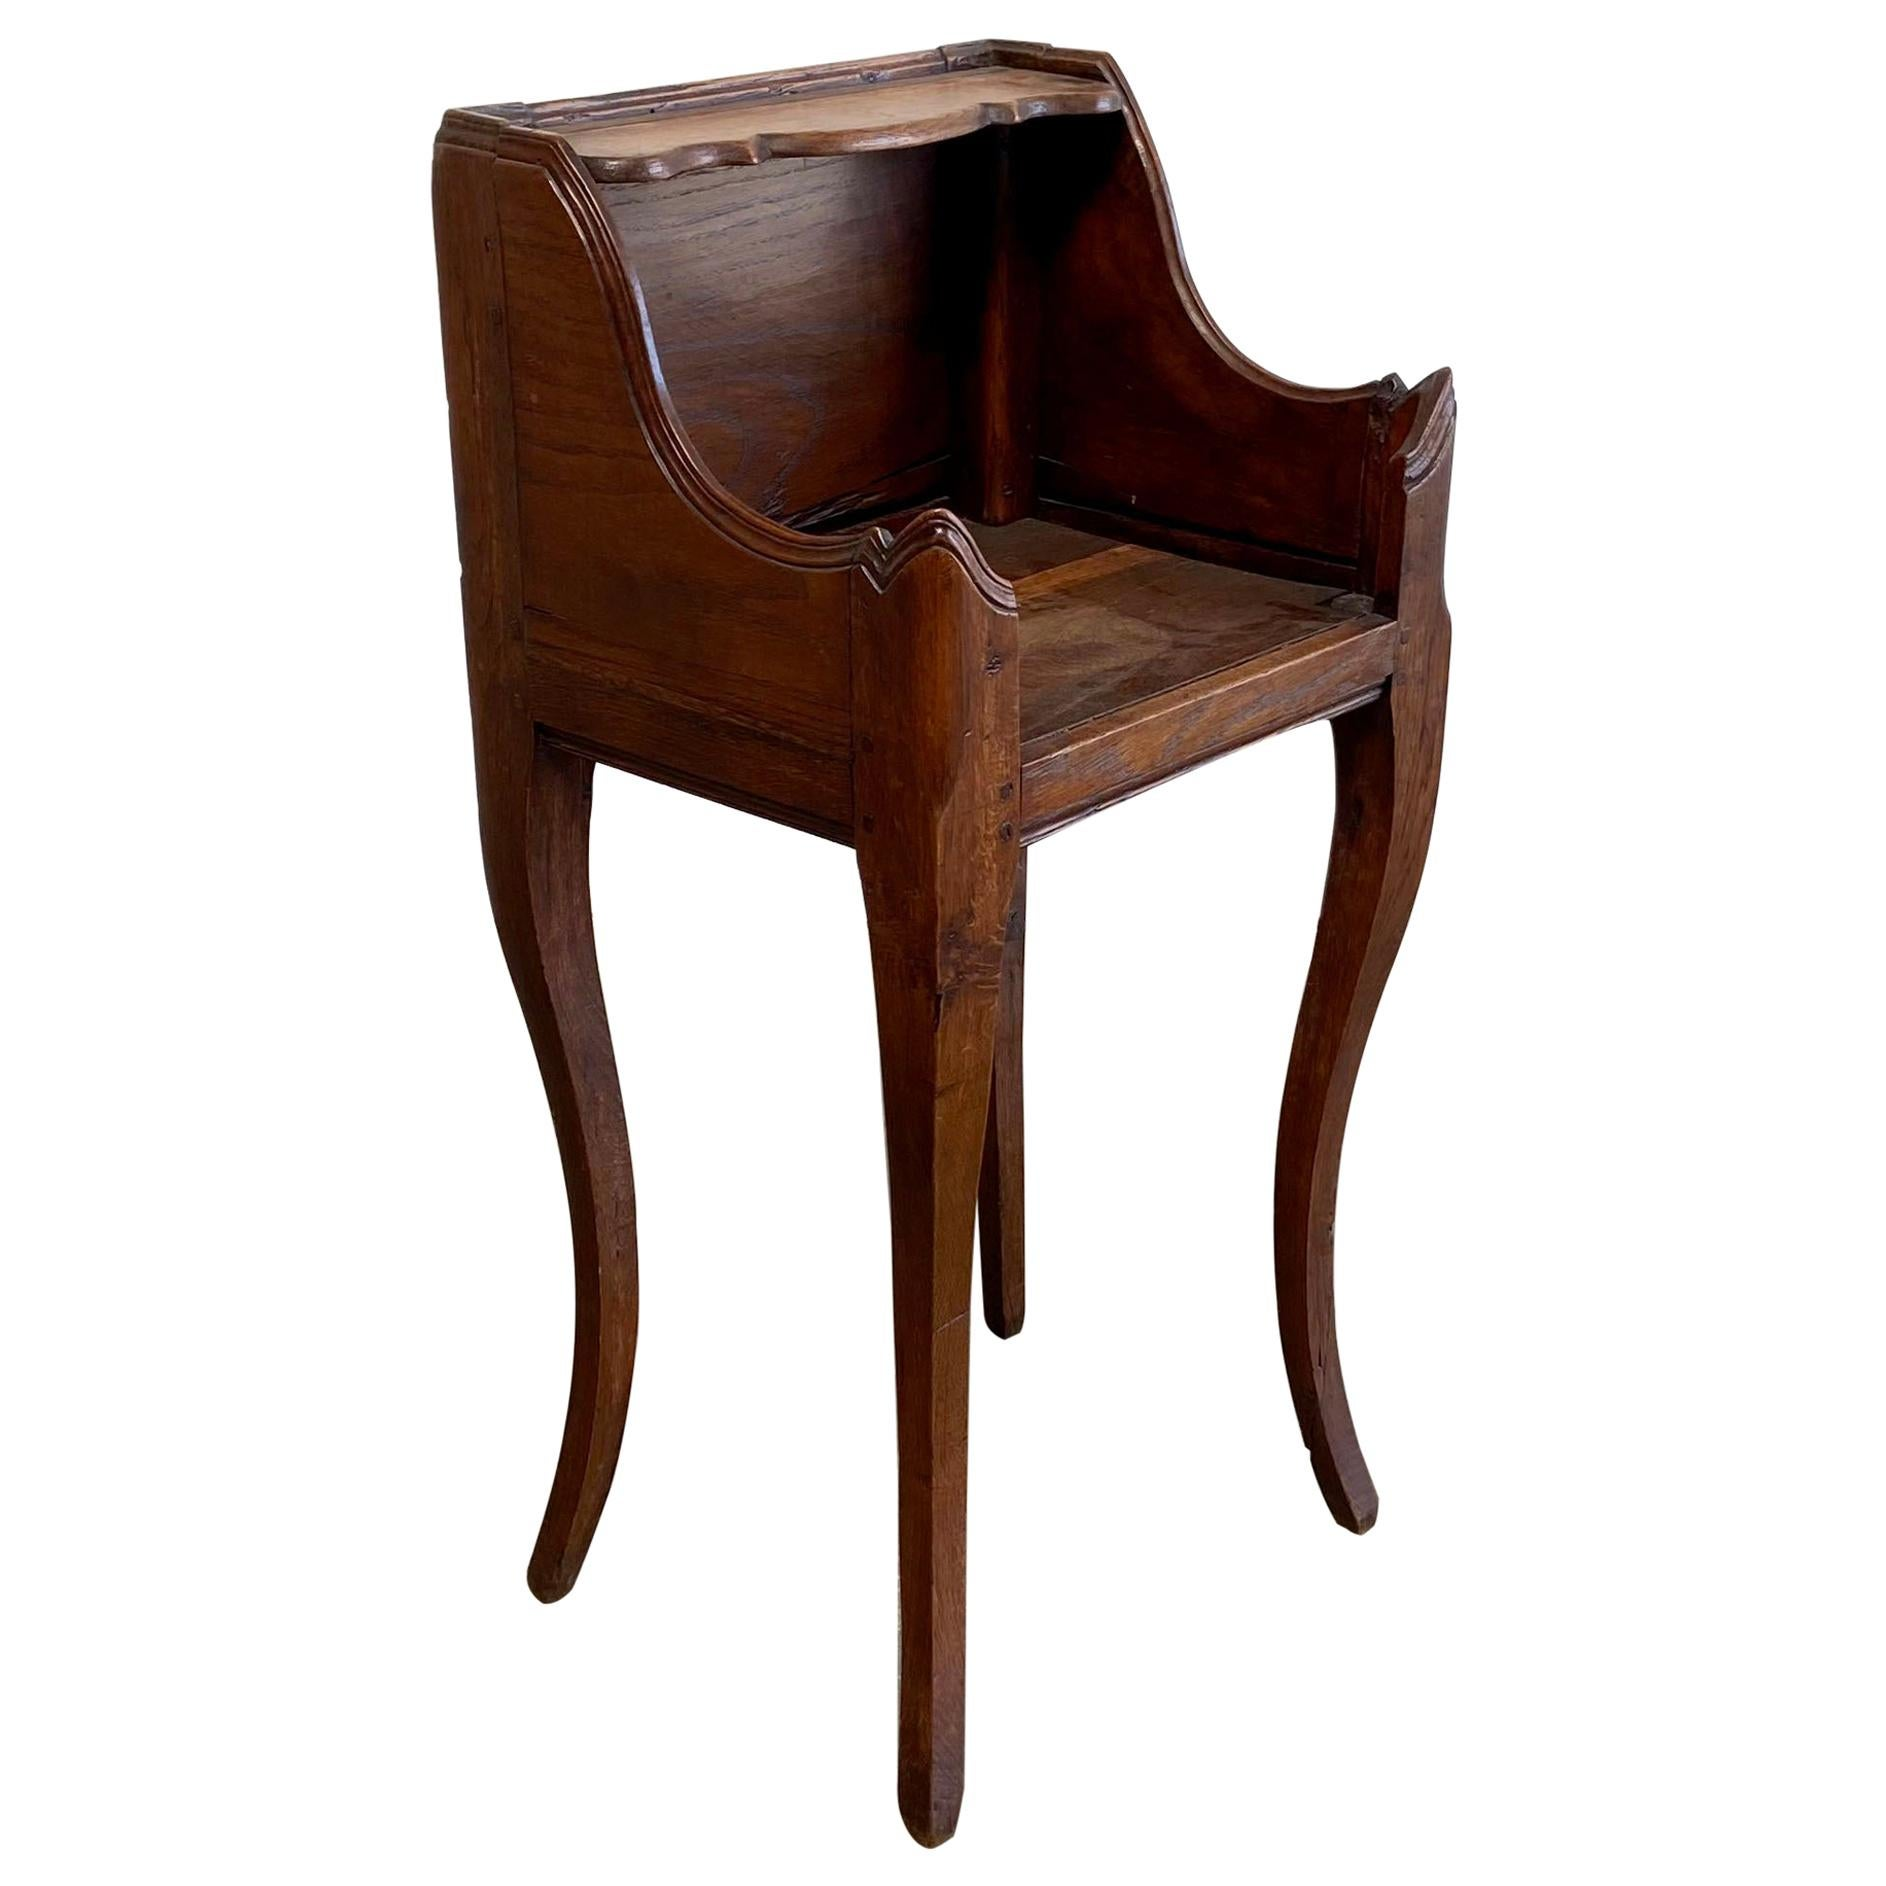 Antique French Country Style Walnut Night Stand or Side Table